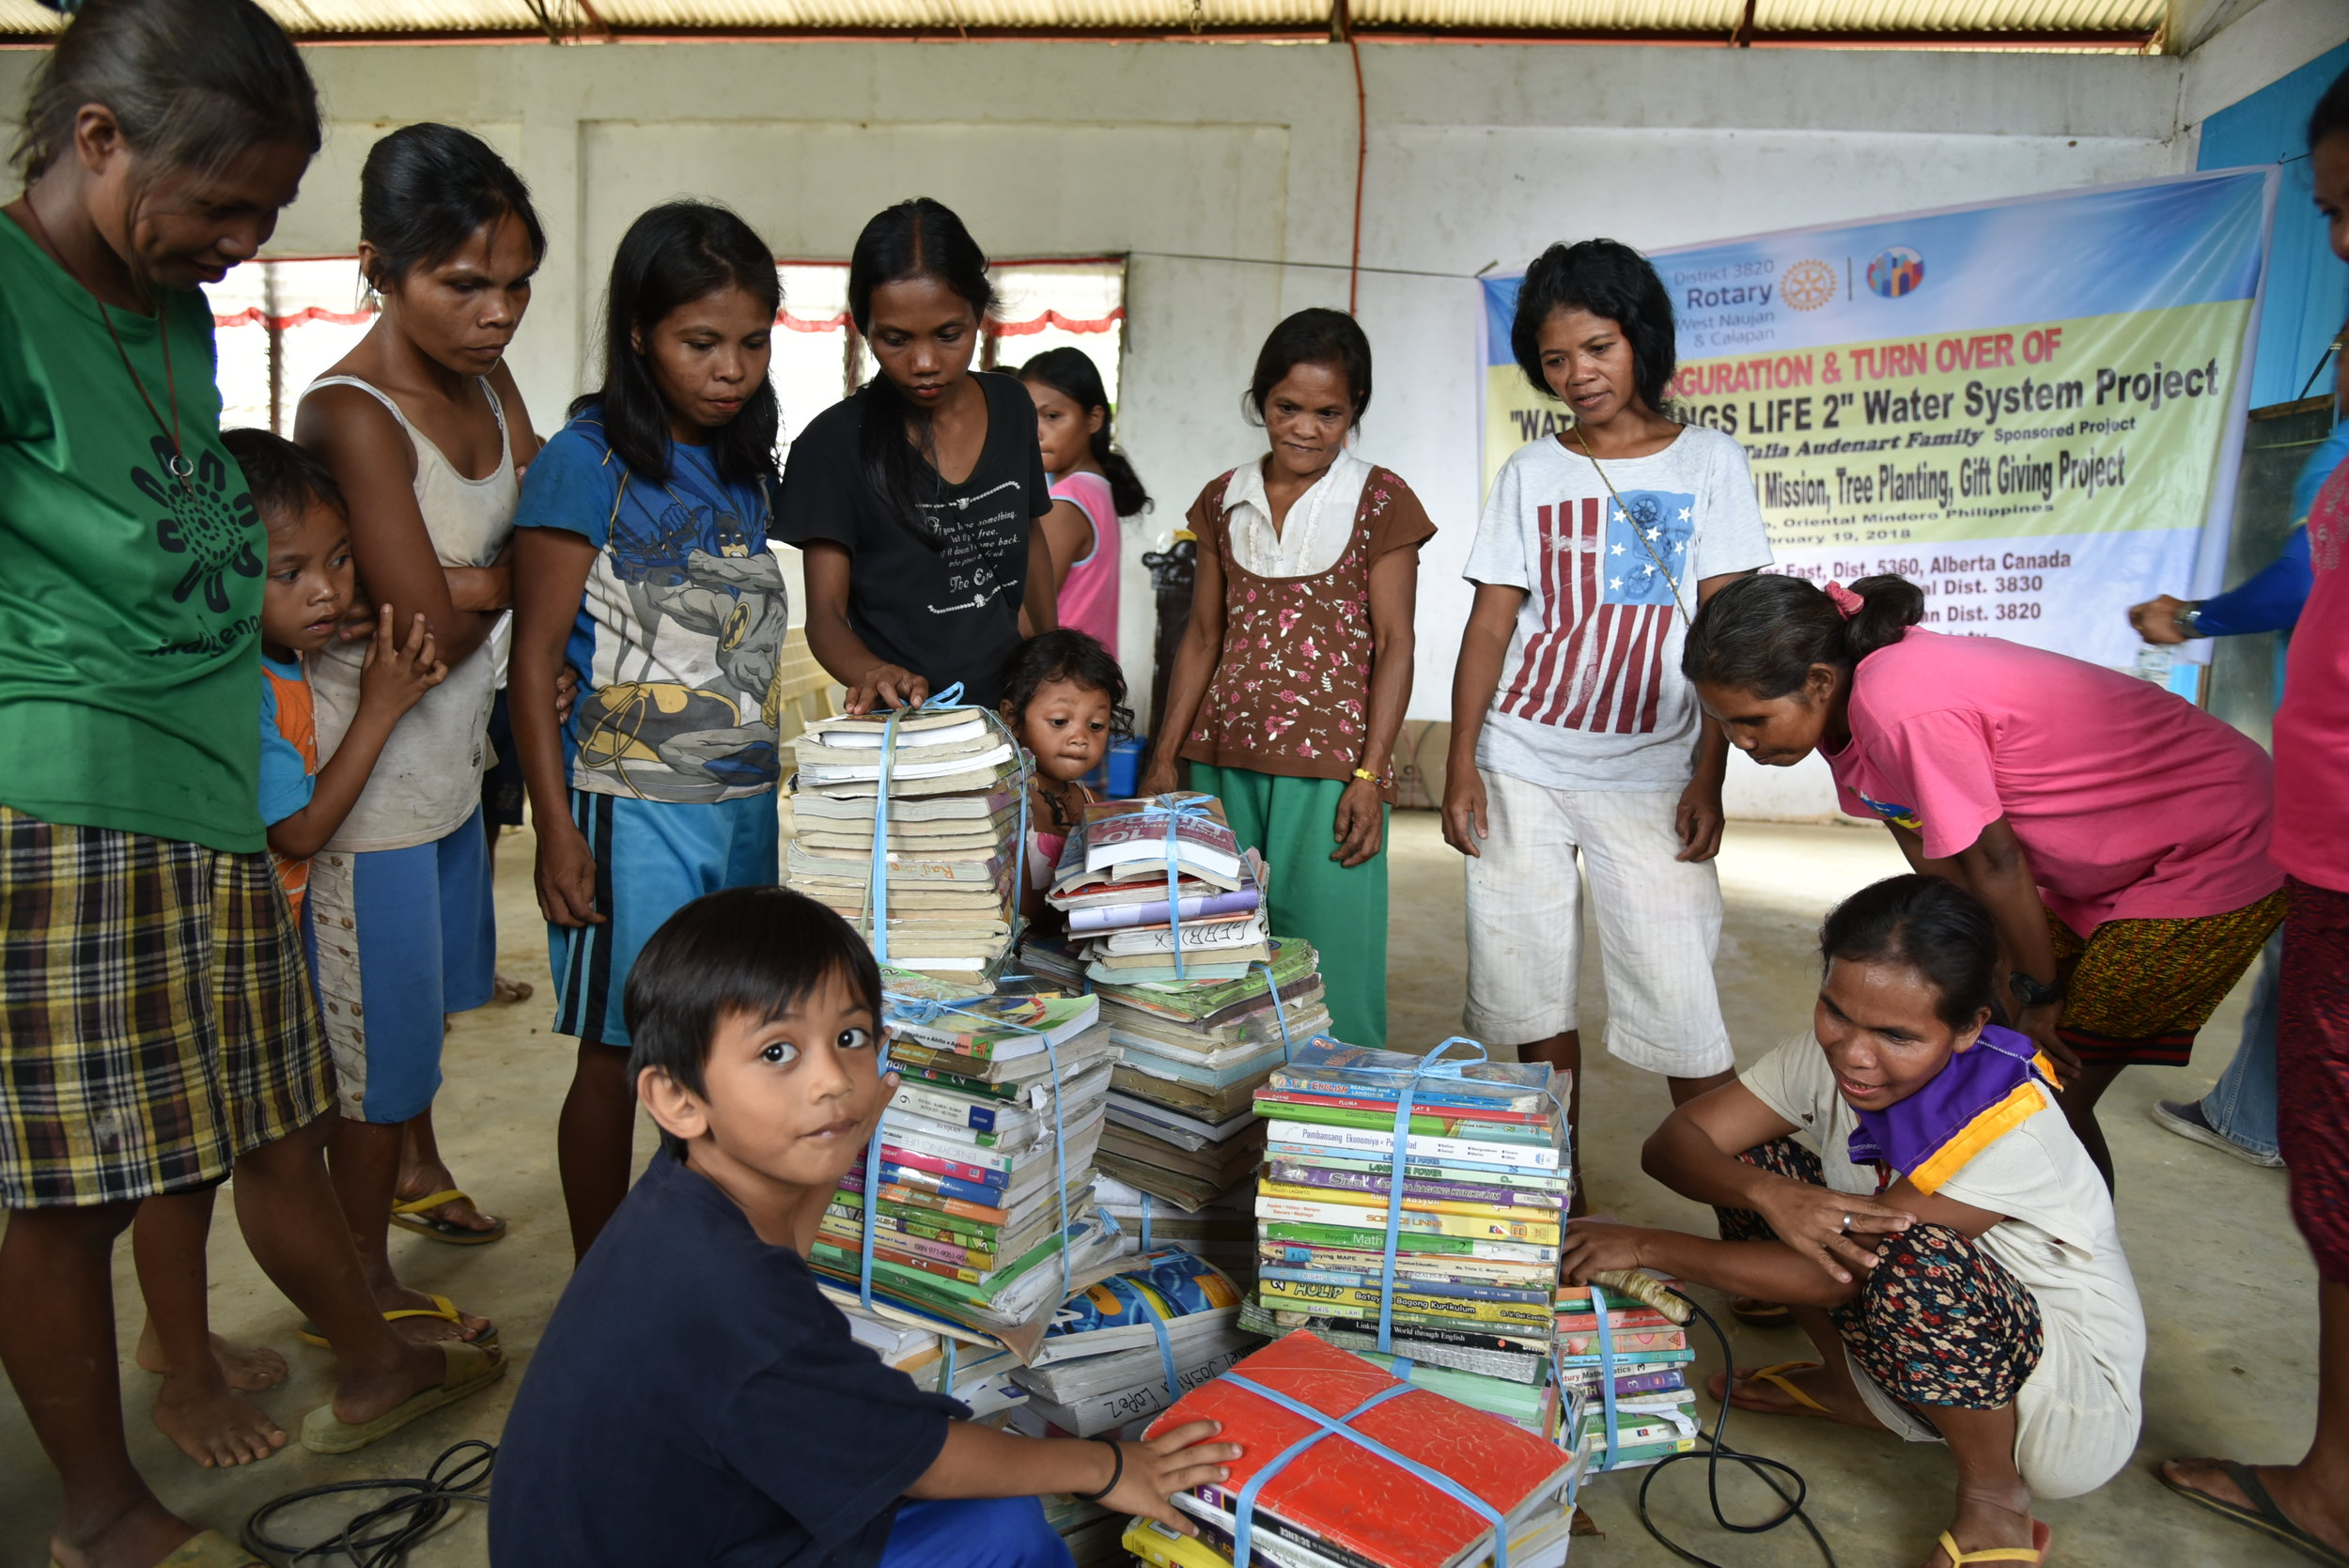 Rotary also brought out school books for the children.